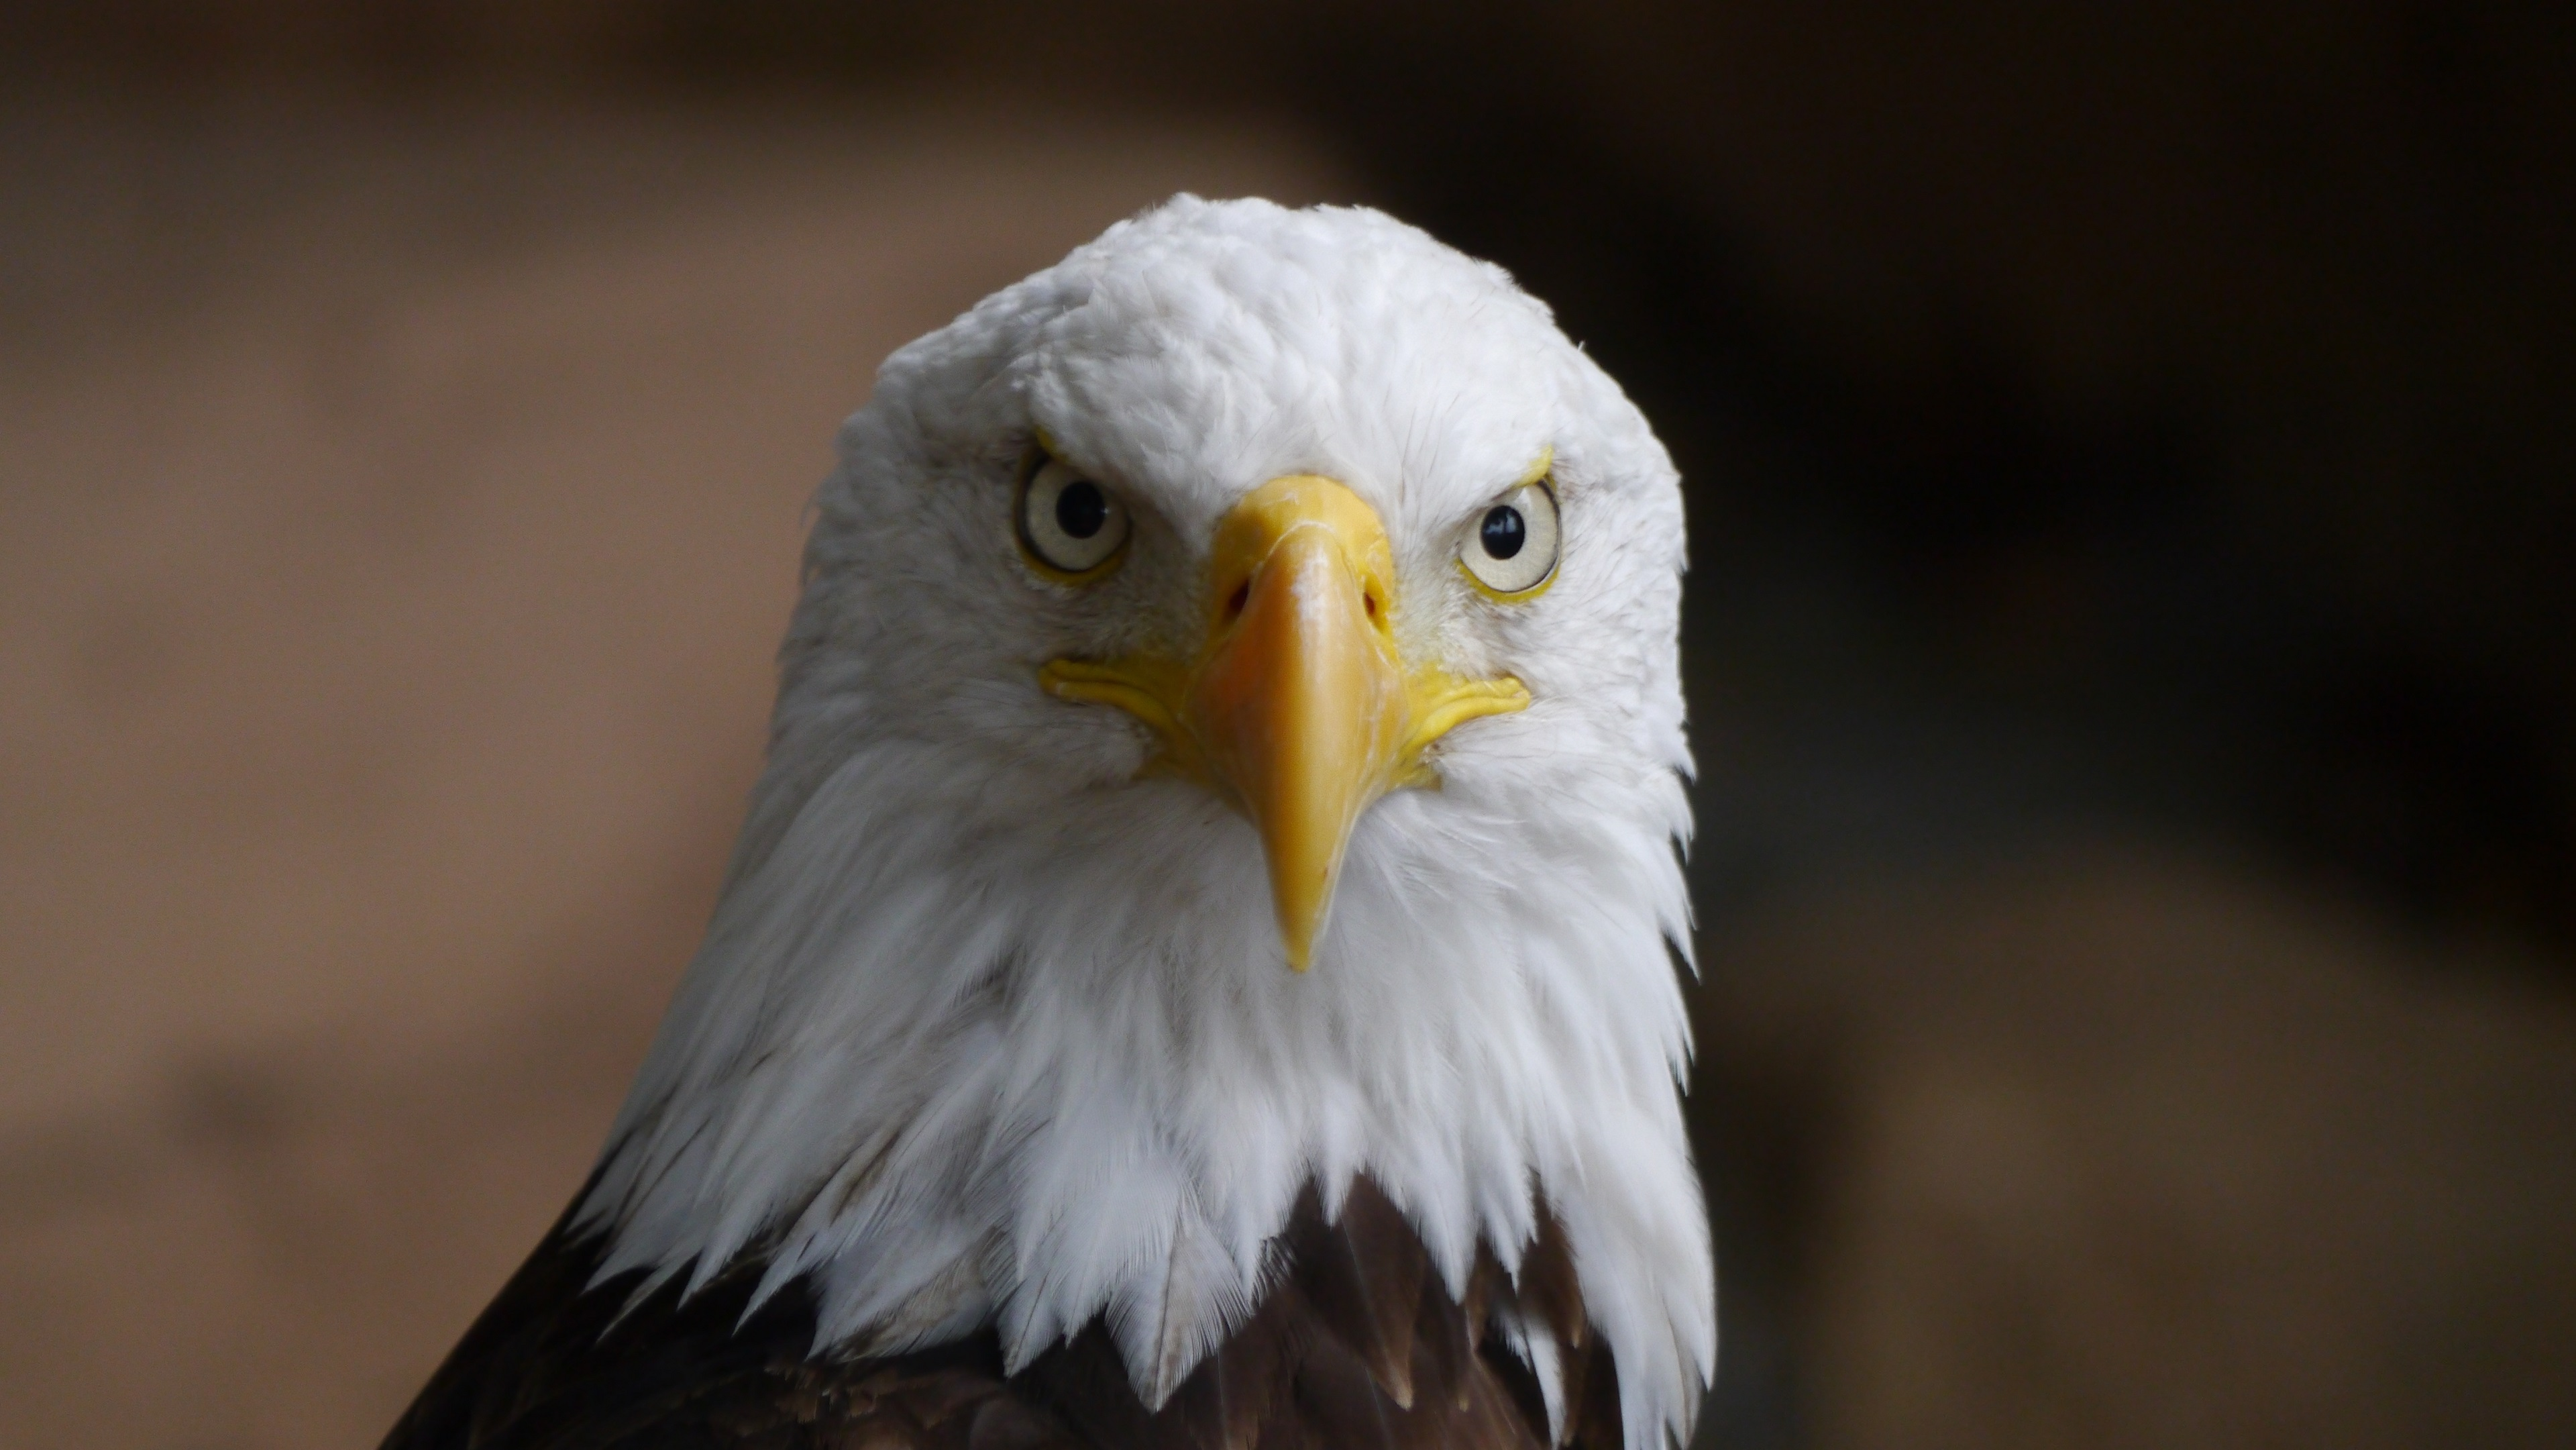 bald eagle wallpaper 4k background